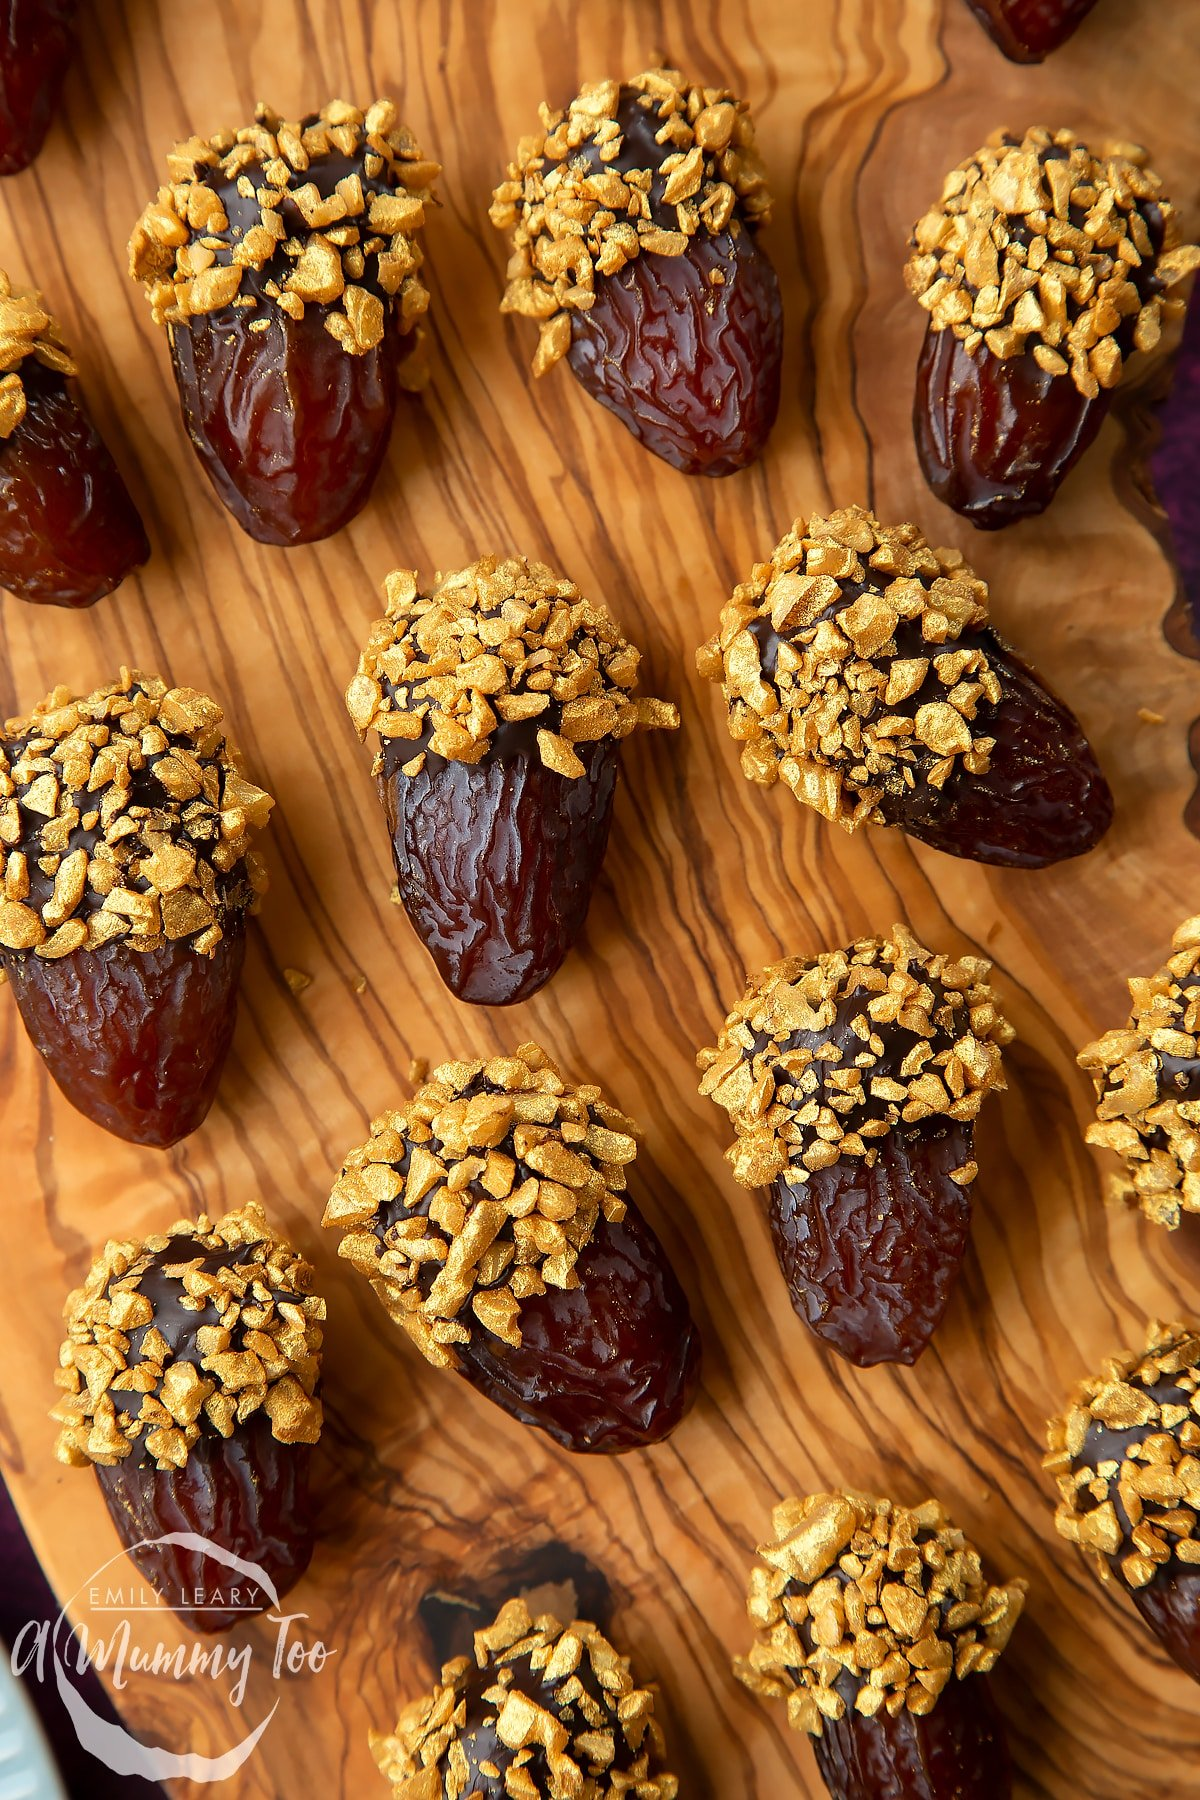 Close up of medjool dates dipped in chocolate. The chocolate dates are on a wooden board and have be studded with gold chopped nuts.